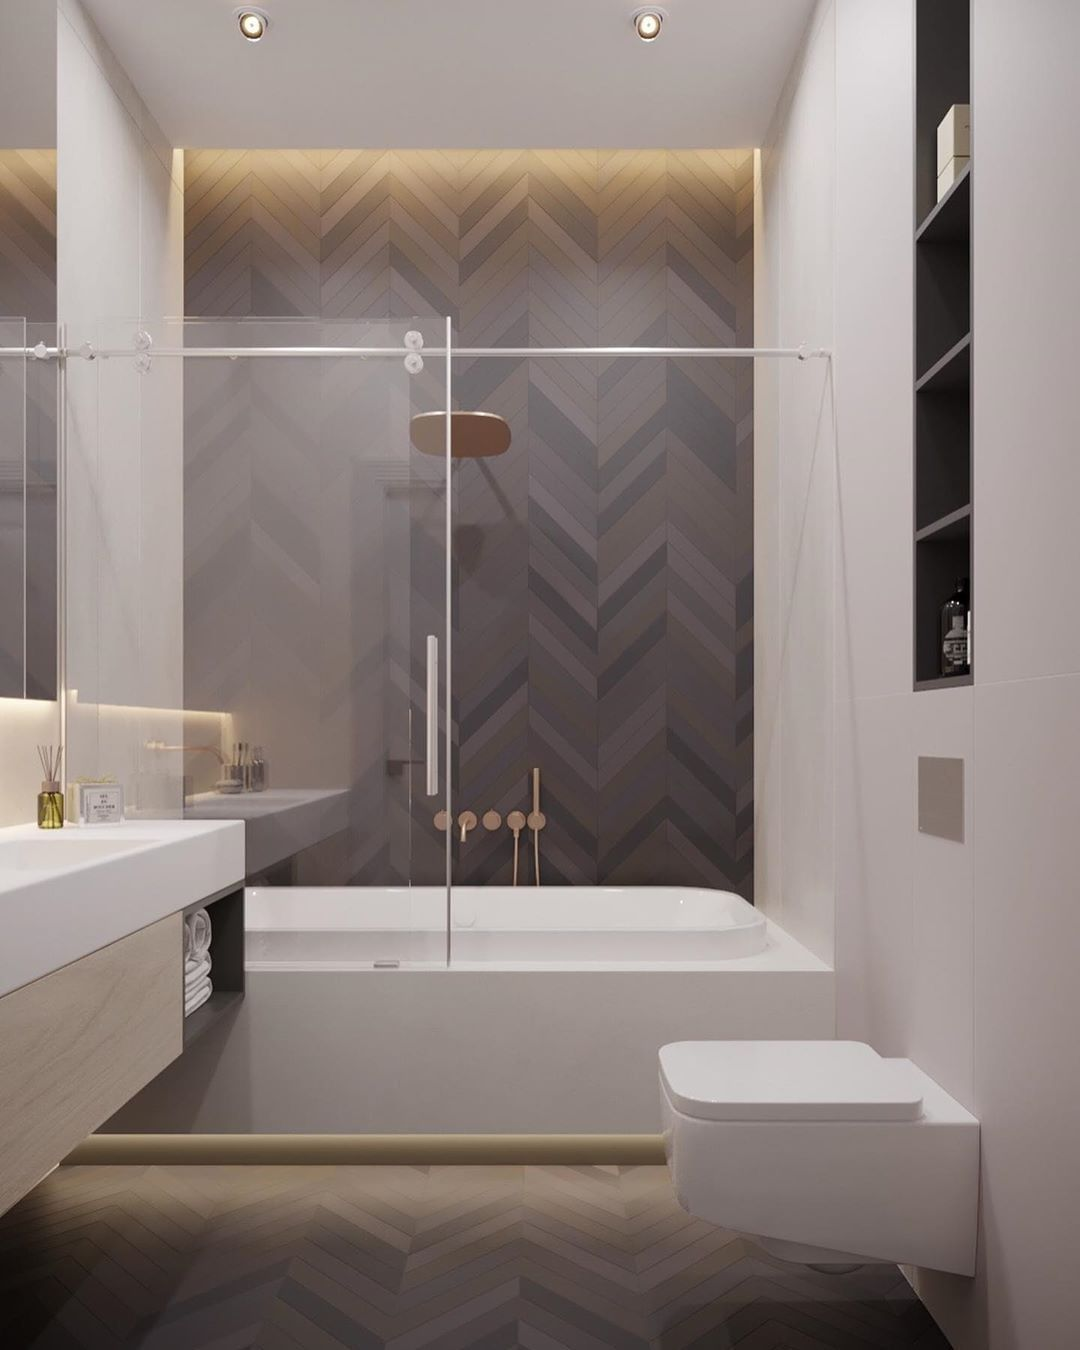 Cocoon Bathroom Design Brand On Instagram Lovely Compact